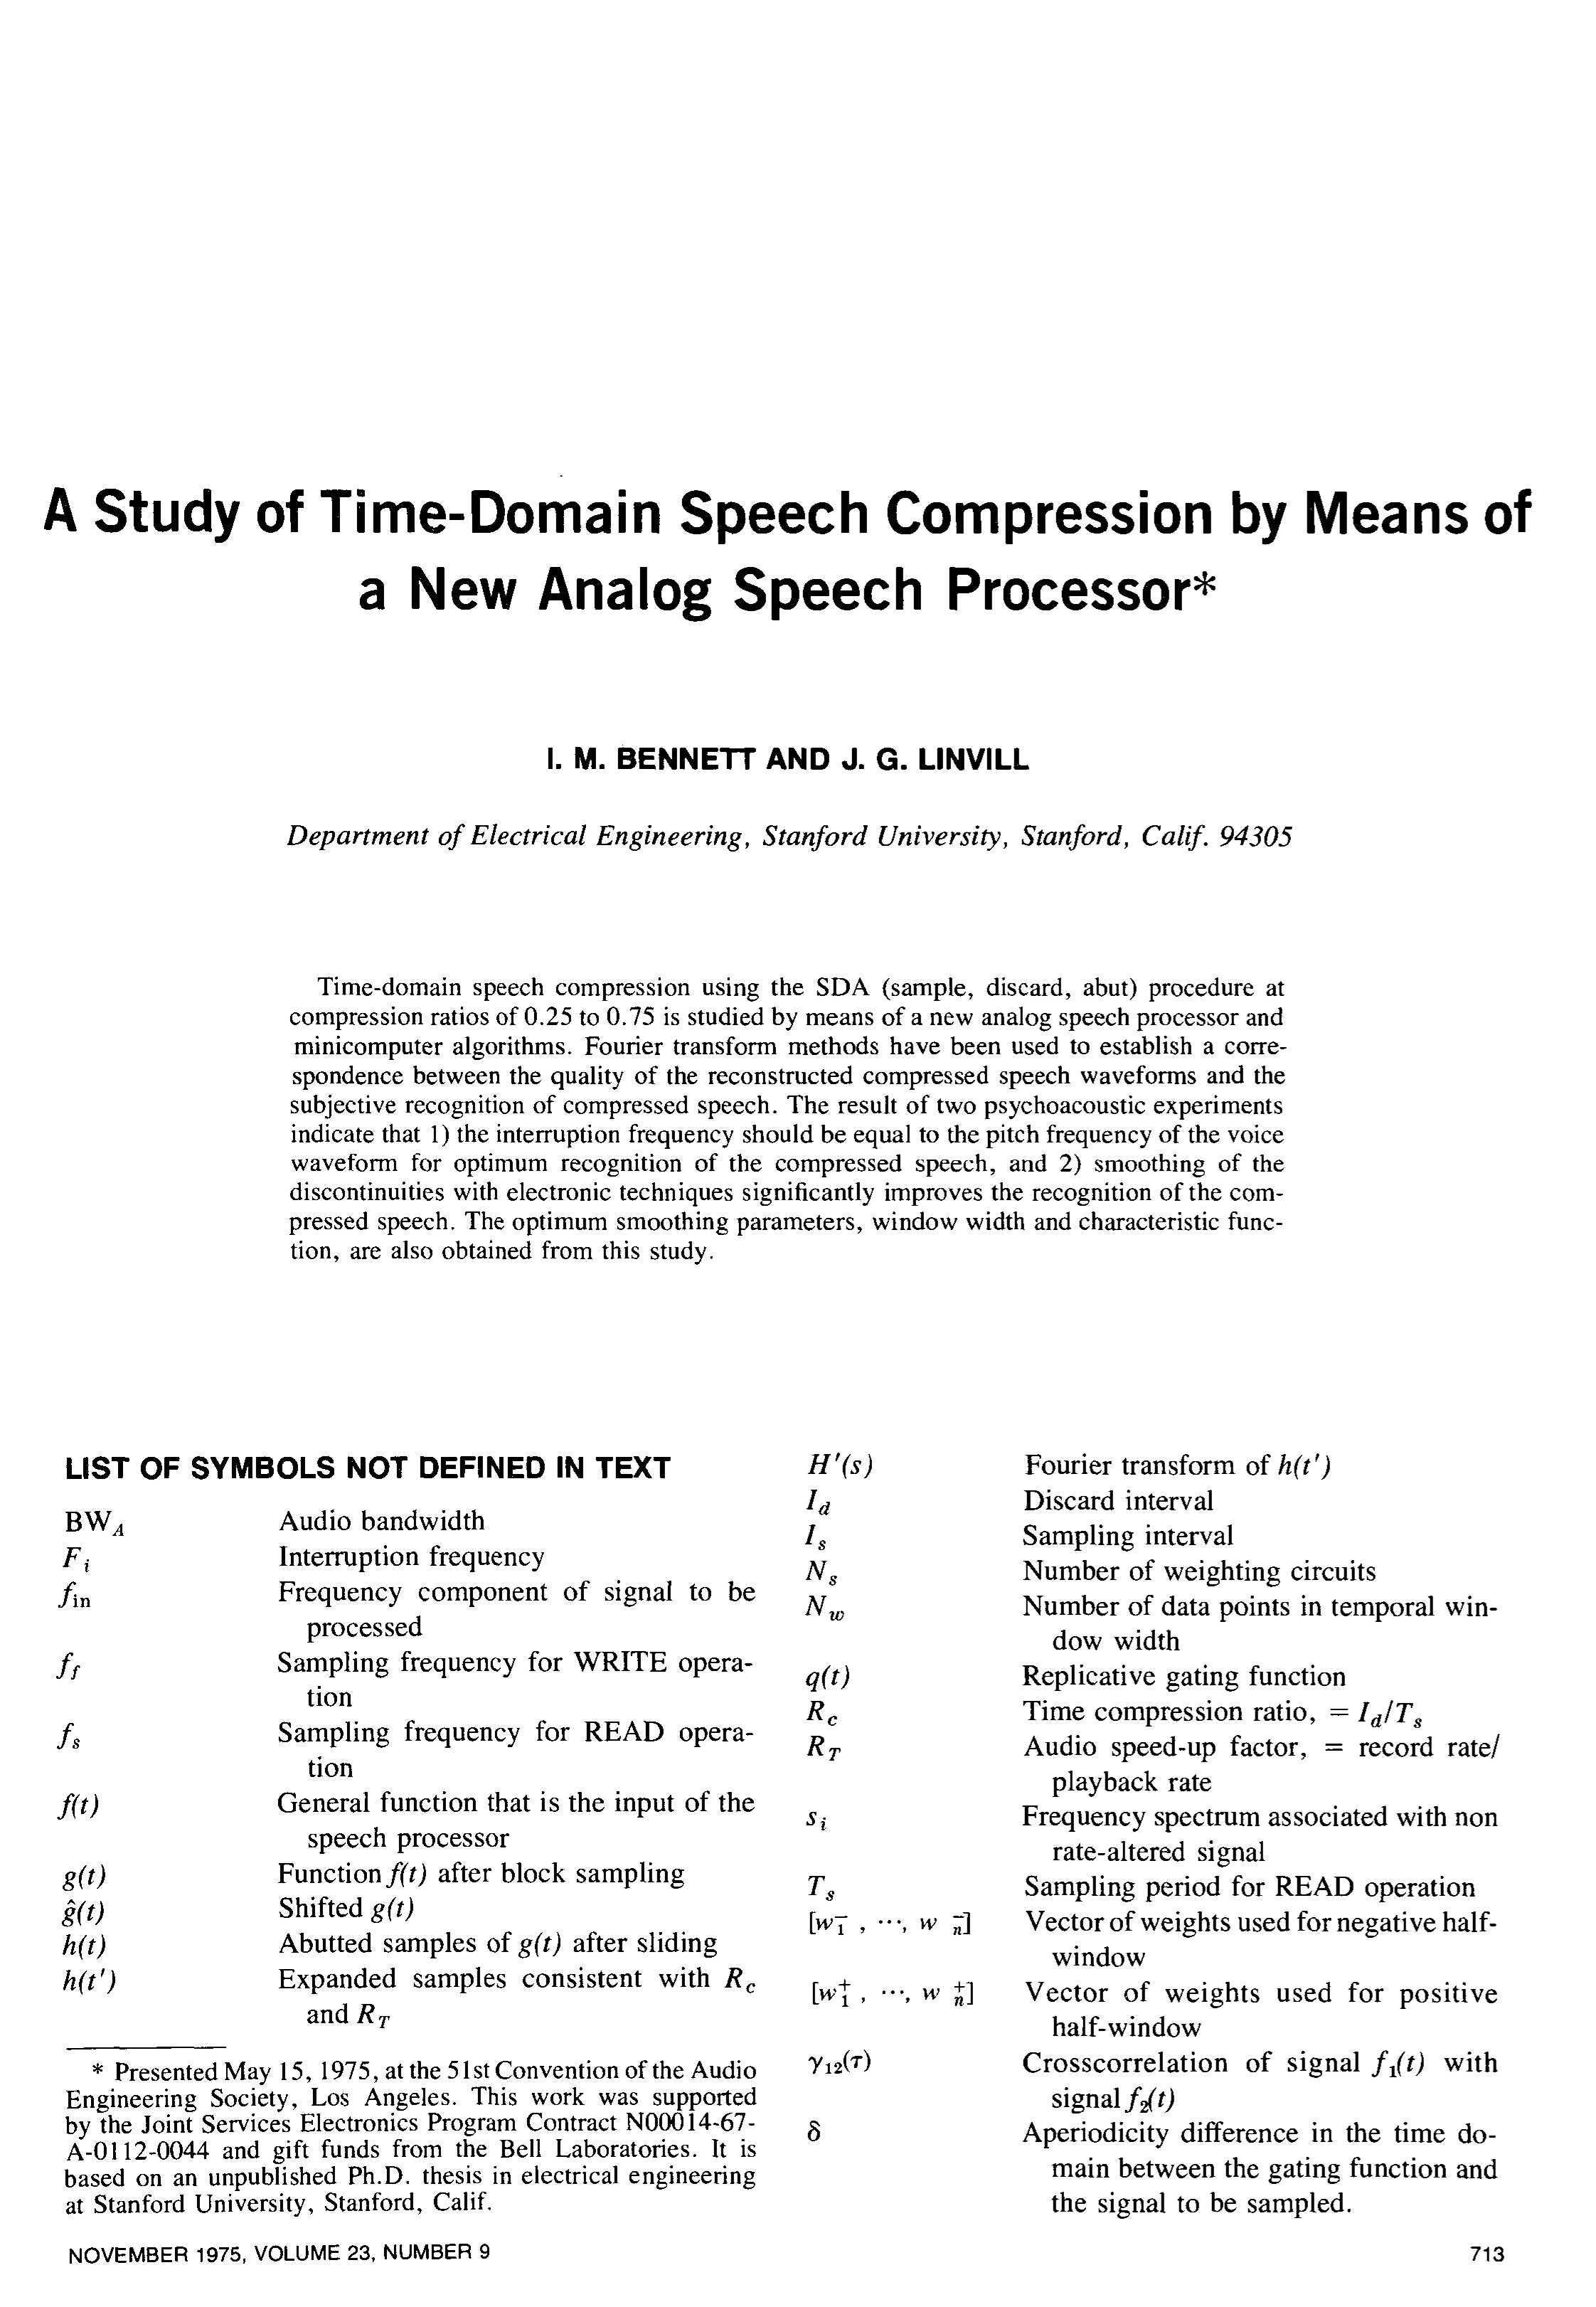 Aes E Library A Study Of Time Domain Speech Compression By Means Isis Prepared With Various Digital Analog Circuits New Processor